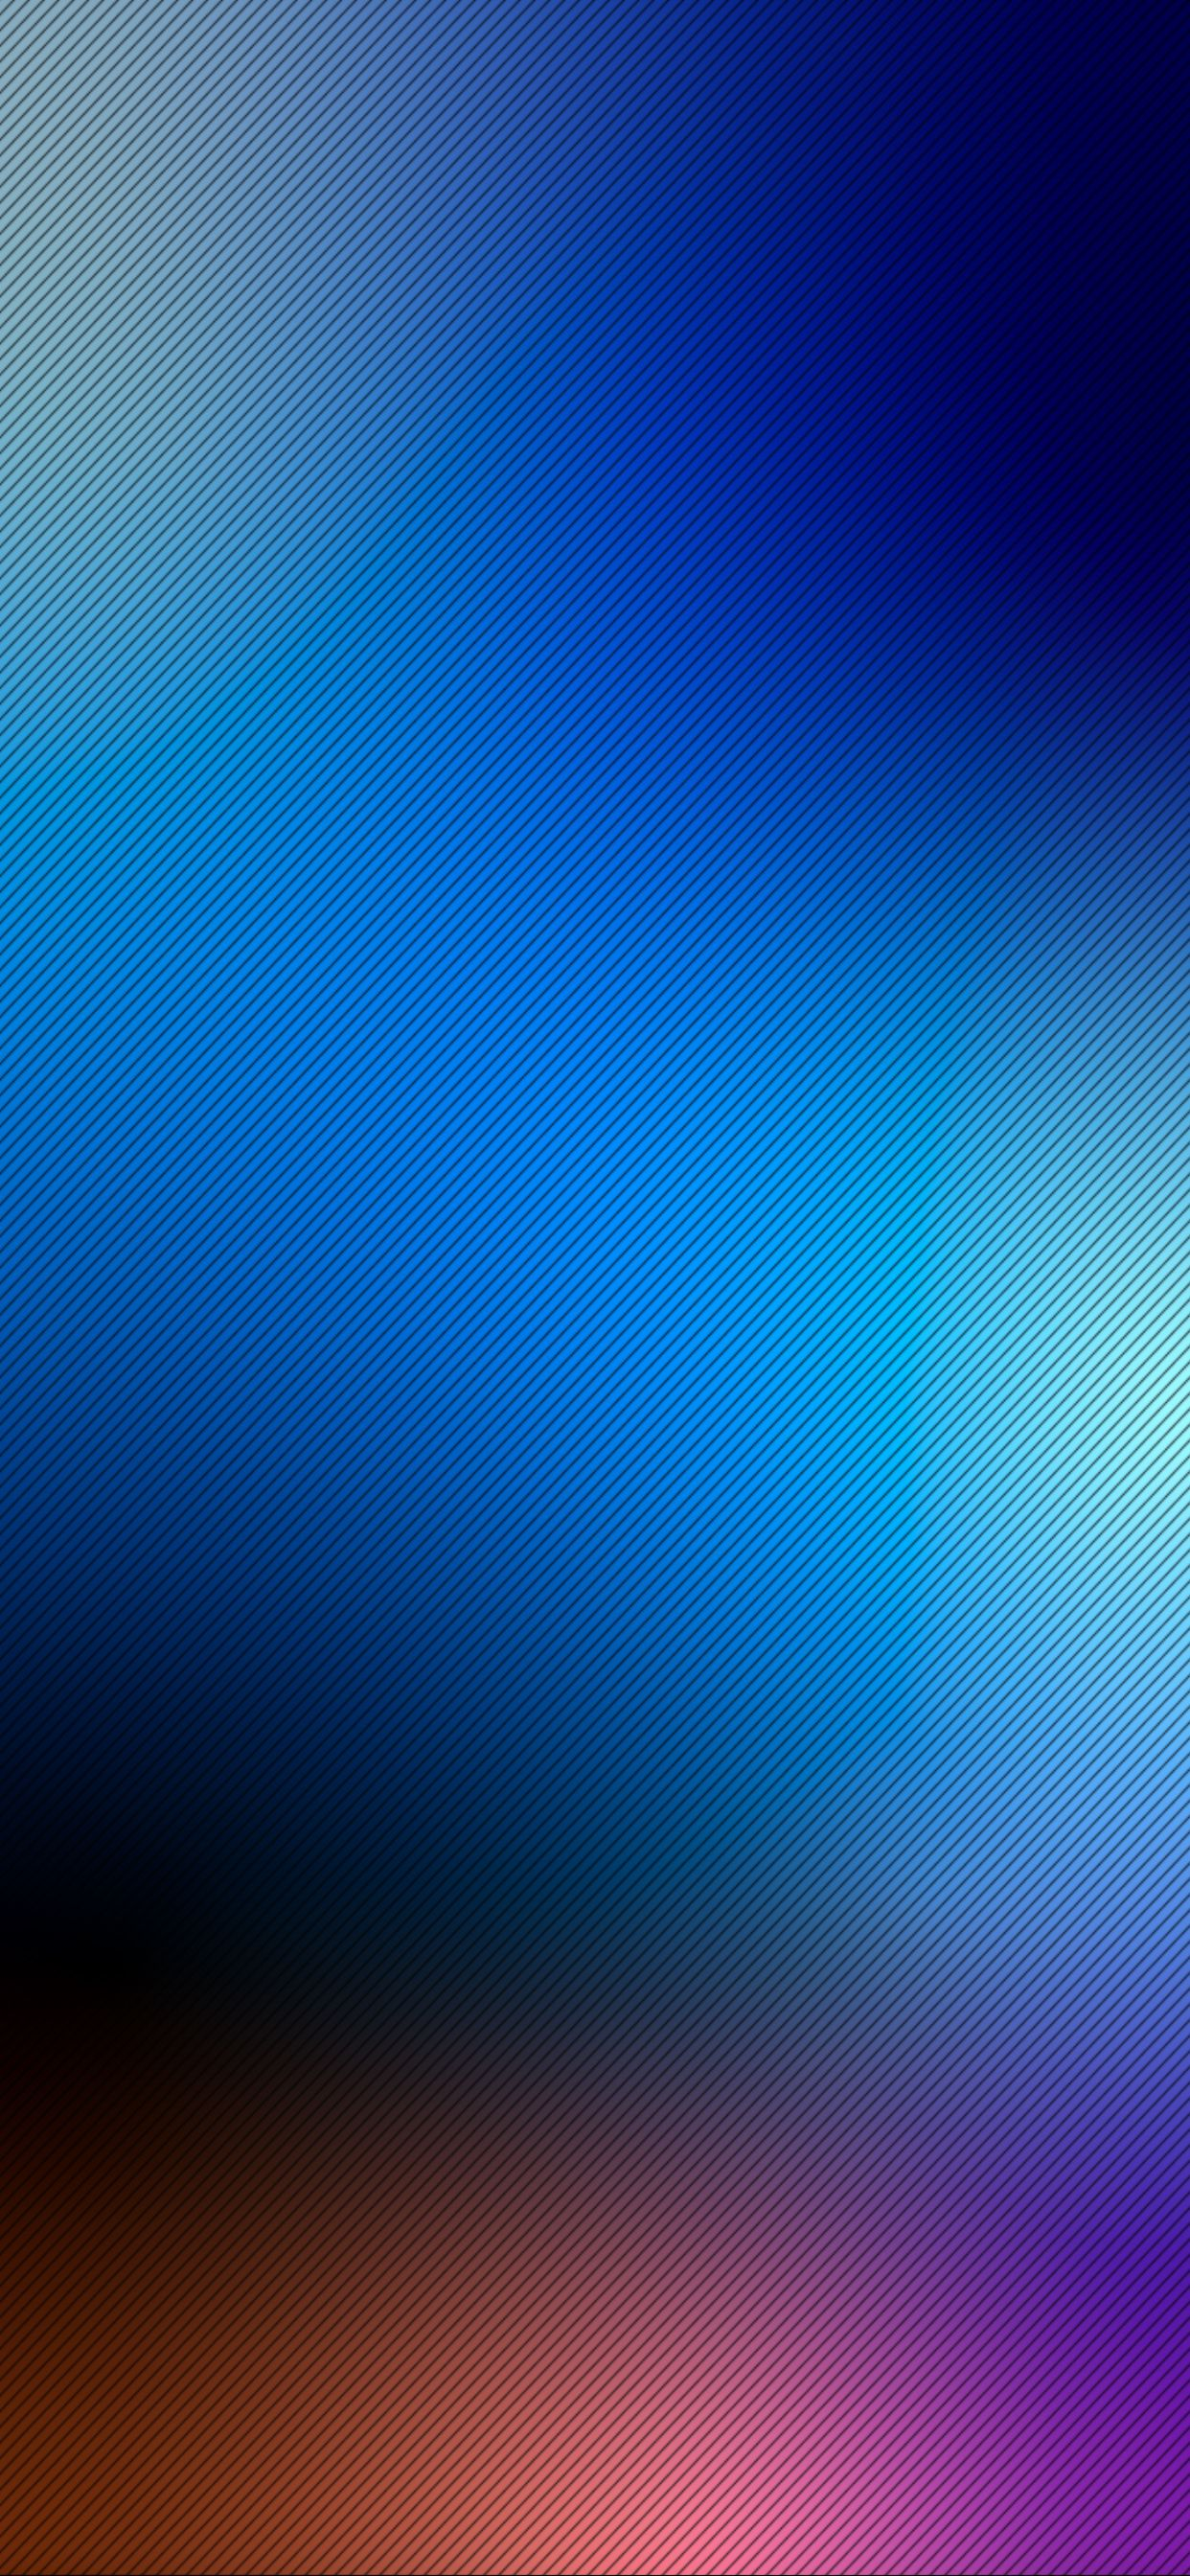 Gradient Grid By Hk3ton On Twitter Iphone Wallpaper Ombre